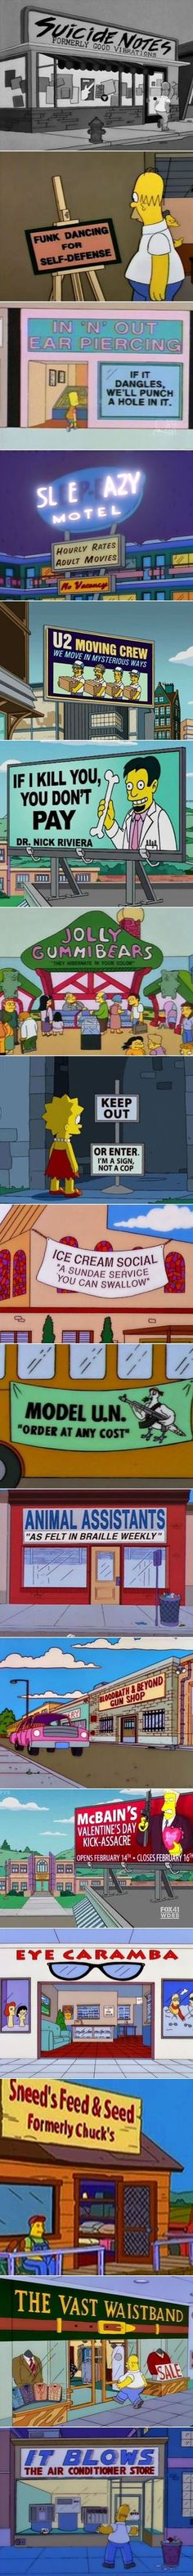 "Signs from The Simpsons - Imgur. Fave one: ""If it Dangles, we'll punch a hole in it"" for the ear piercing joint."